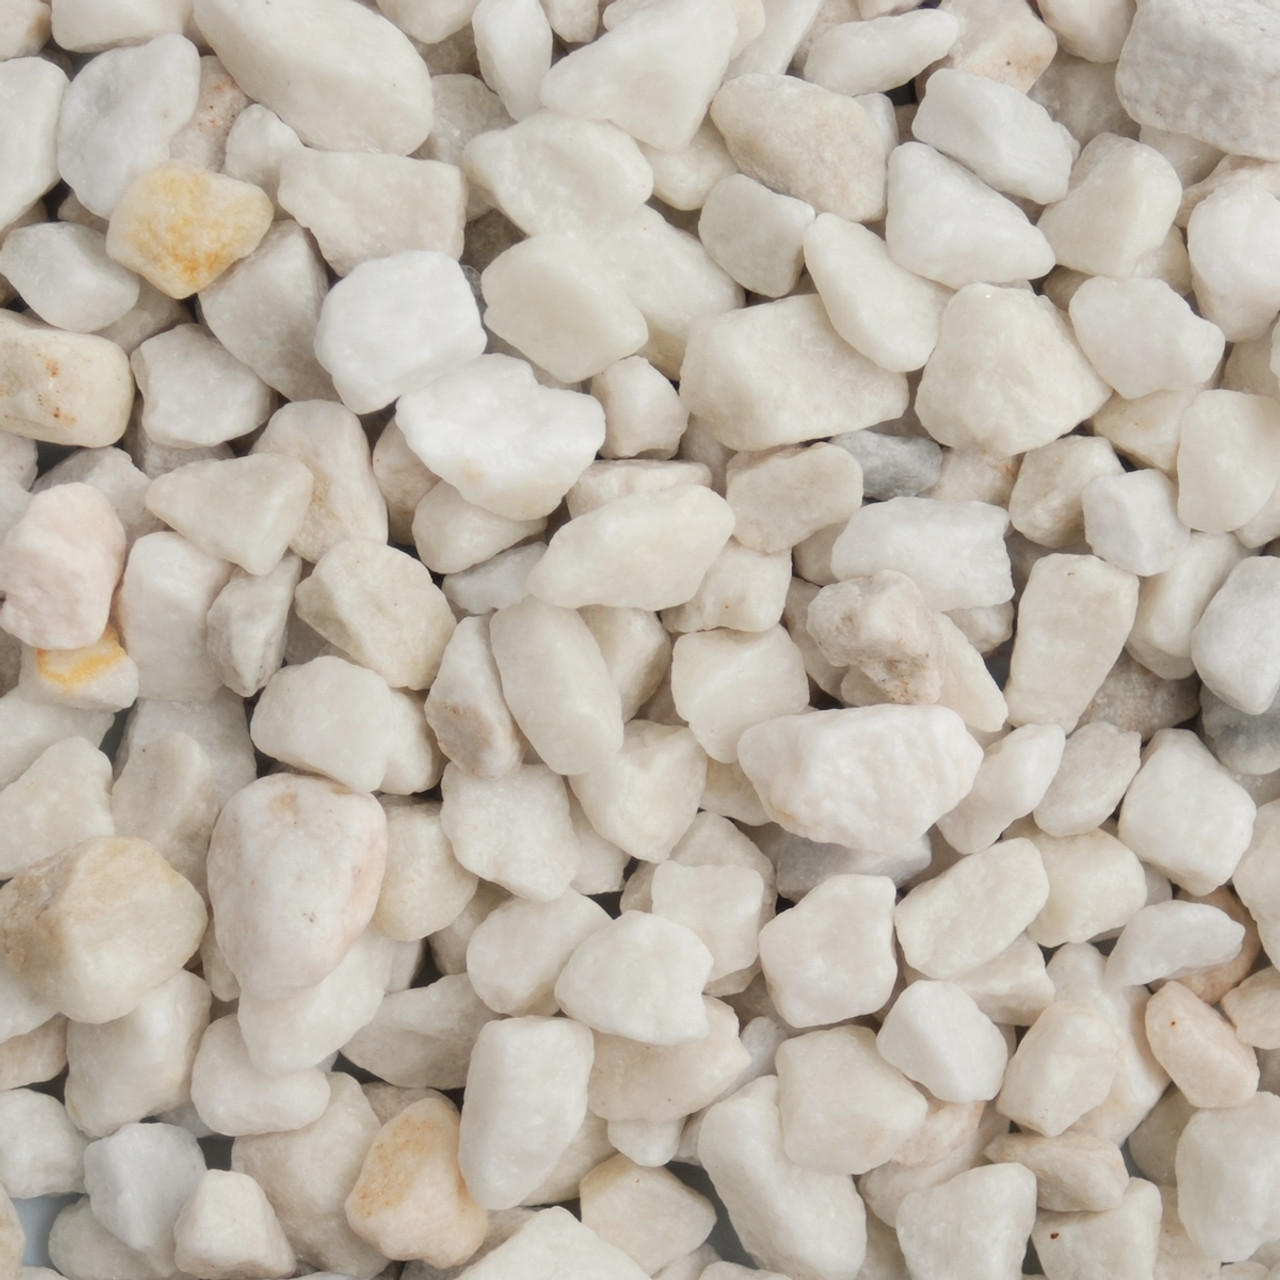 Polar White Chippings 20mm bag - LOCAL DELIVERY ONLY (3 MILE RADIUS)